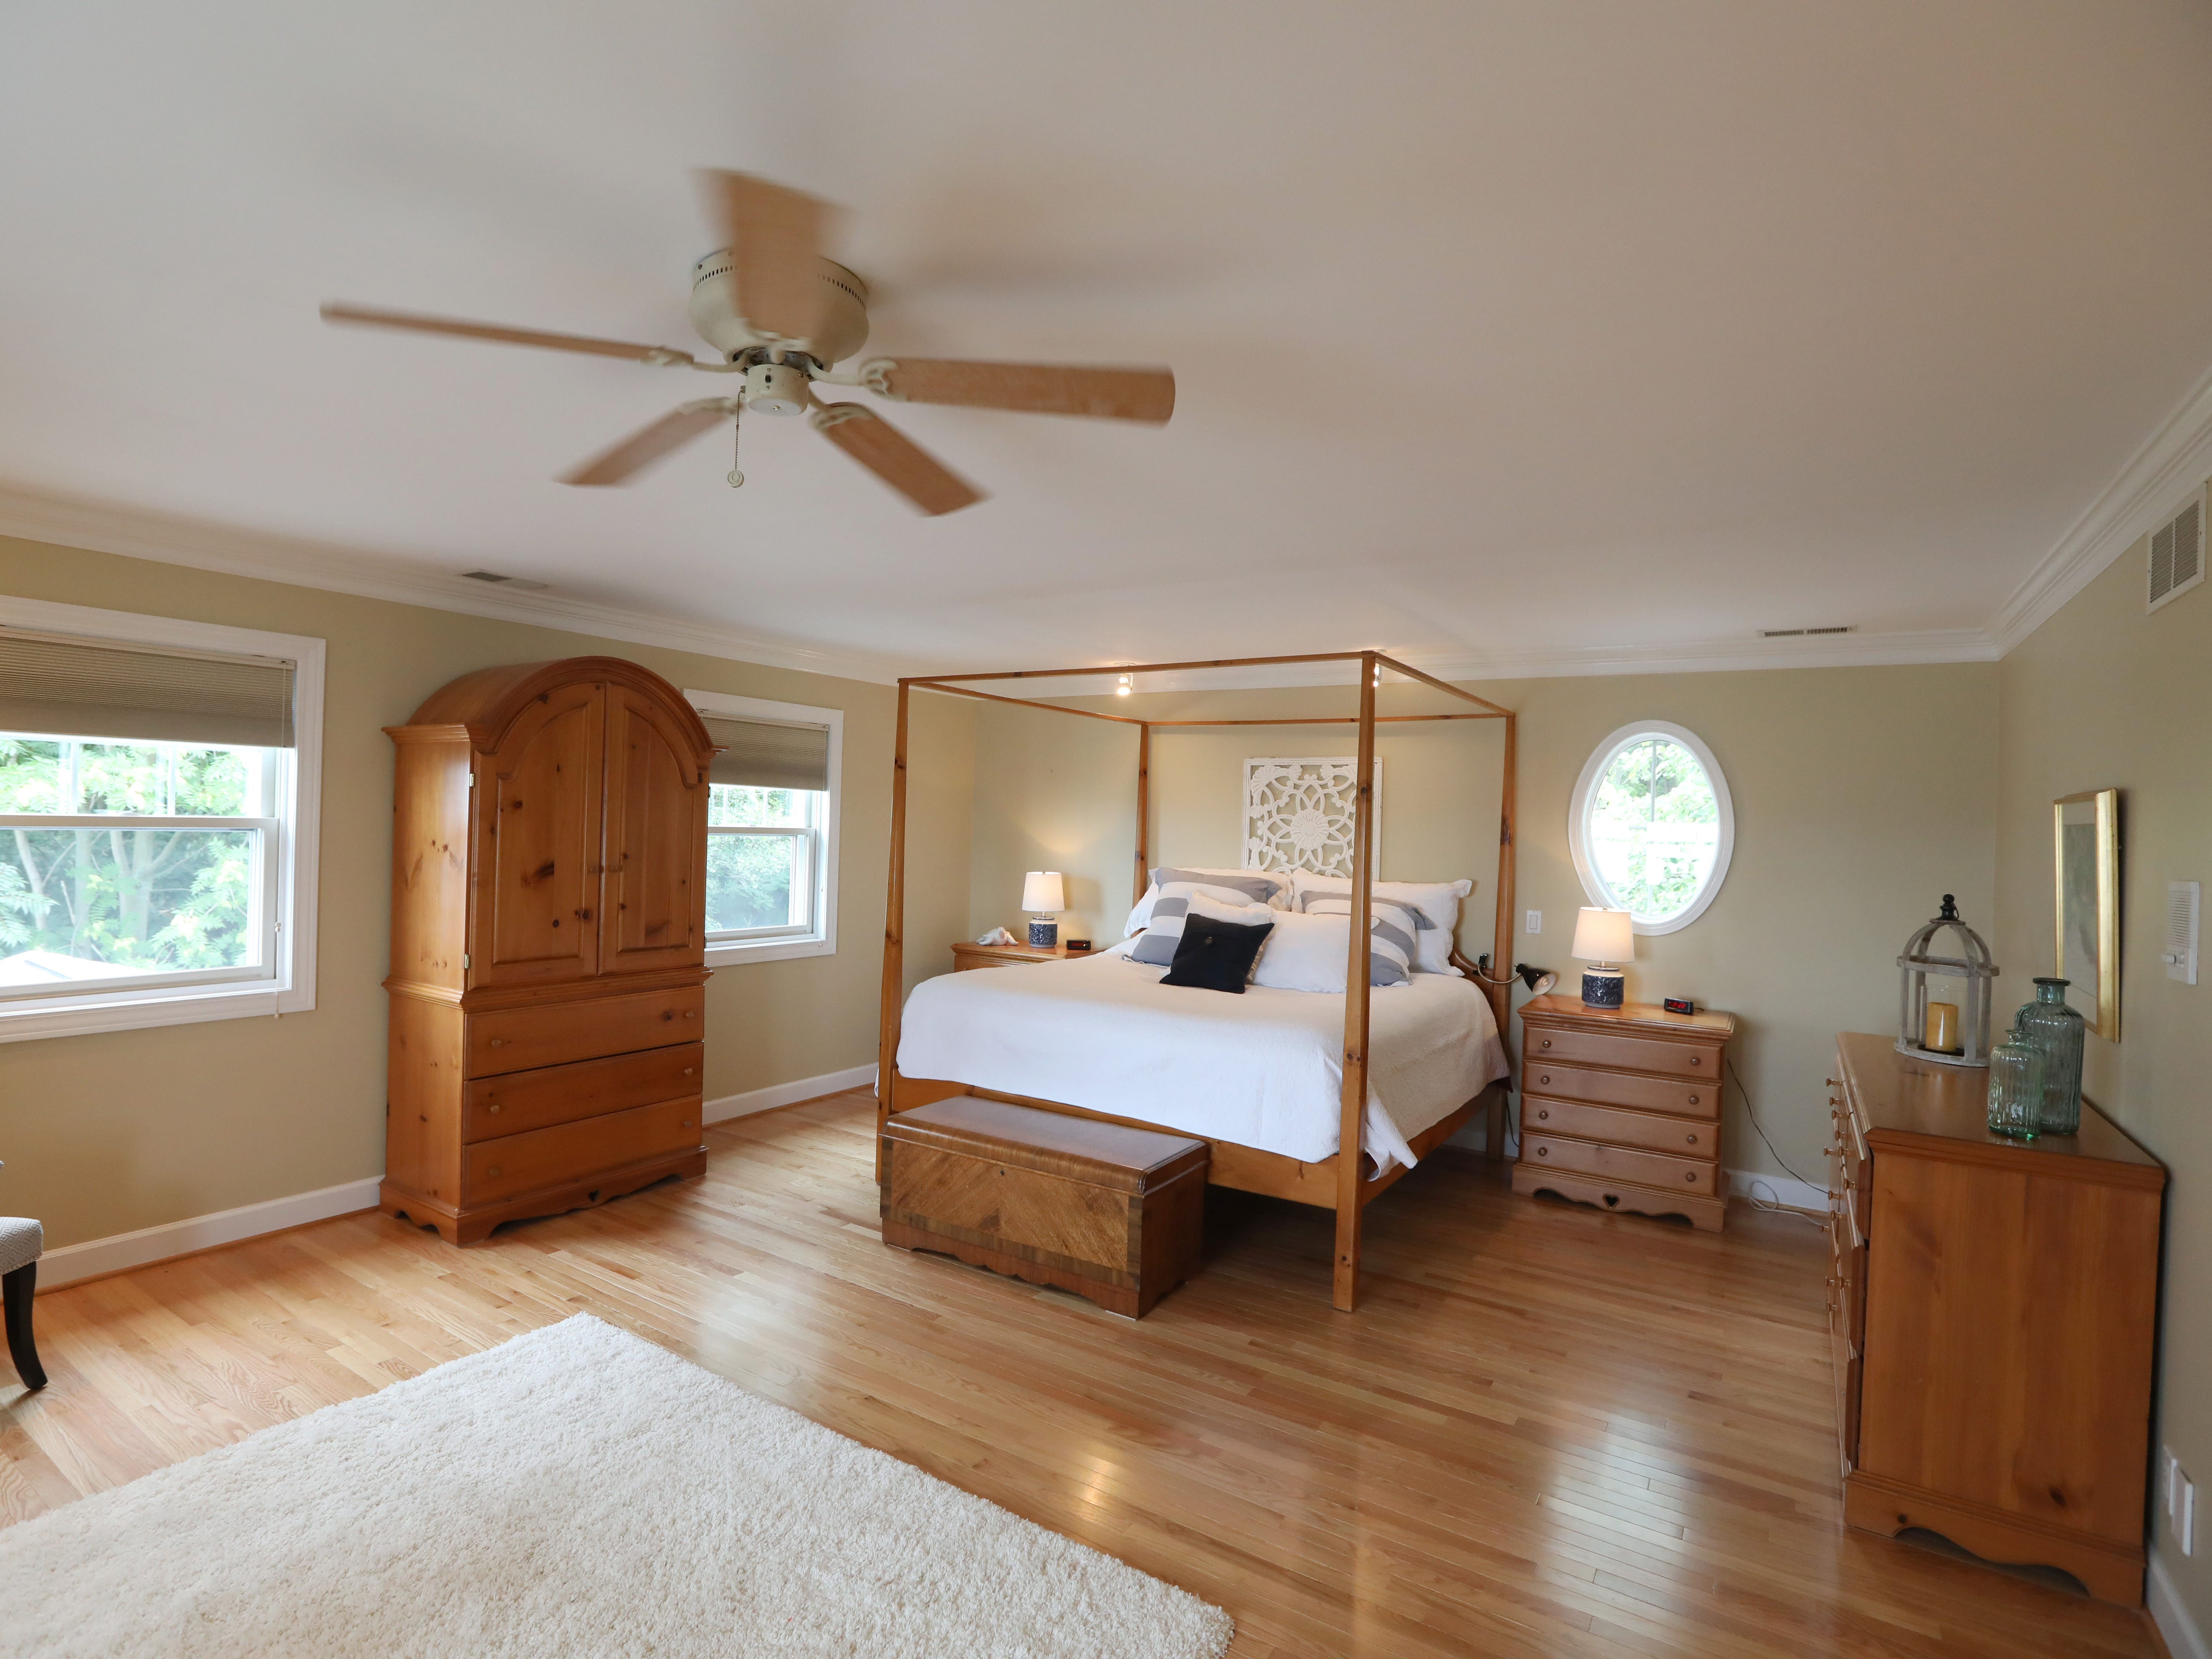 The master bedroom on the second floor.